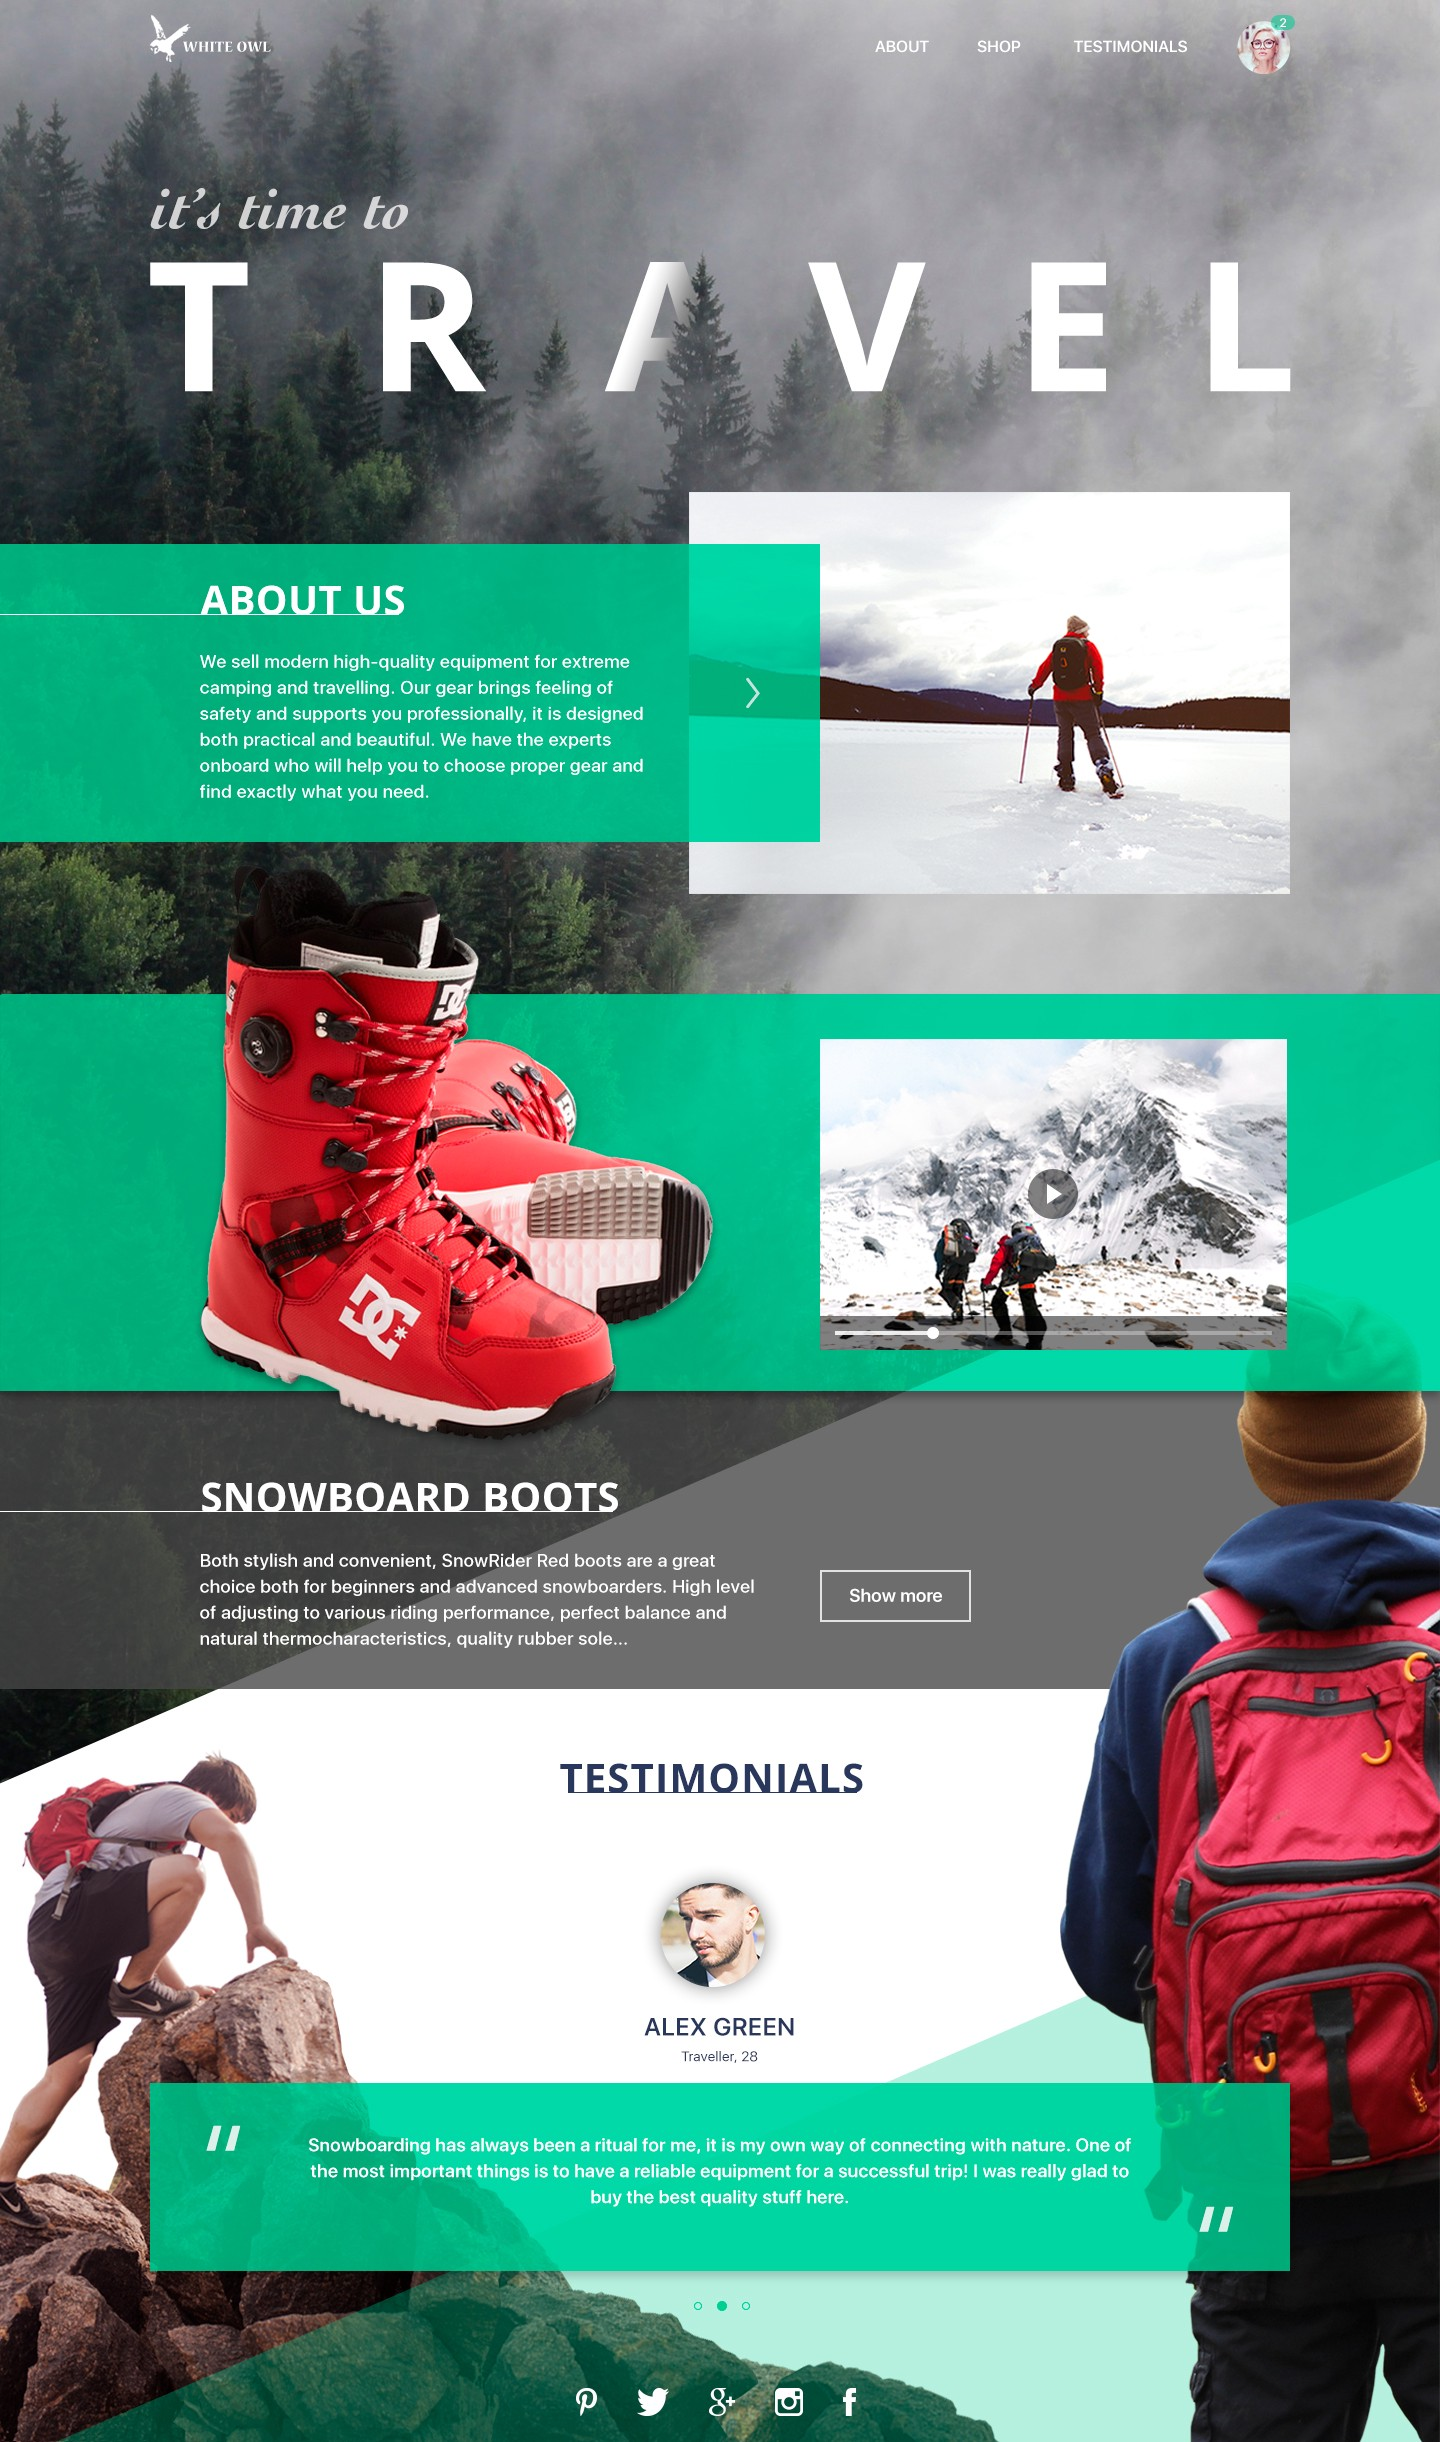 375ea858c69 Here is the layout of a landing page  the company presented by it sells  gear for extreme sports and active traveling so images were selected to set  ...